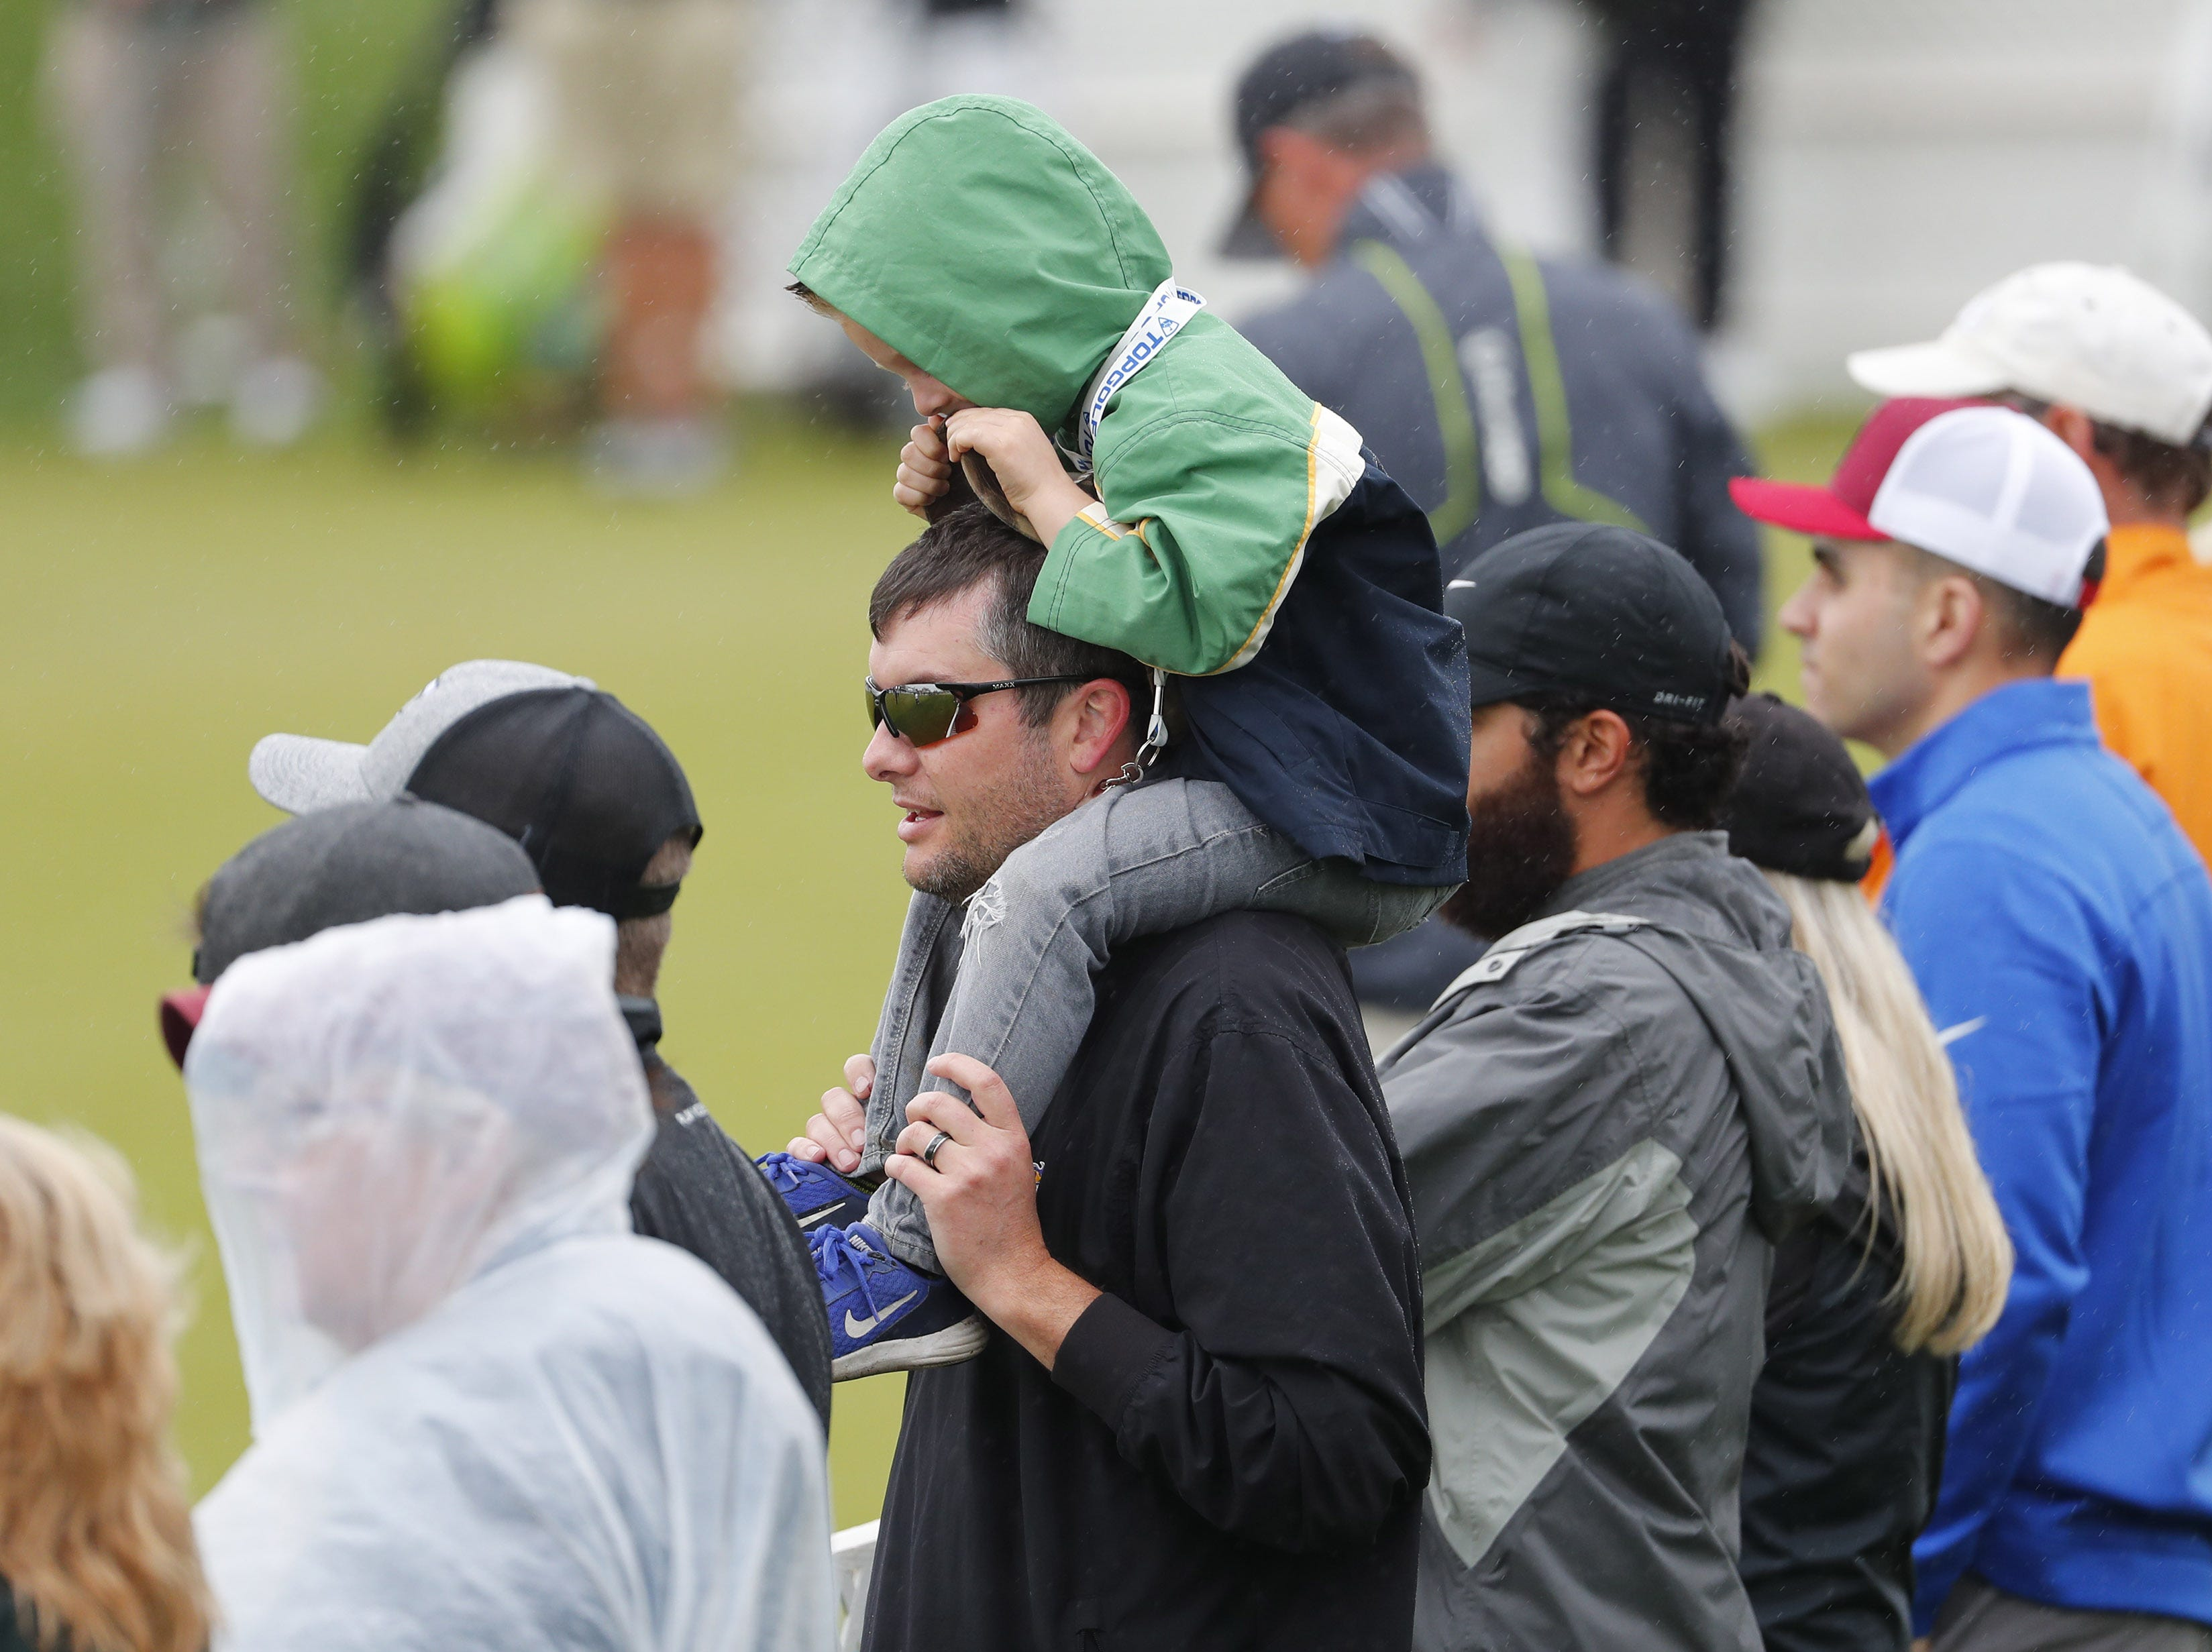 Tim Armbrust carries his son, Bennett, 4, on his shoulders while watching the final round of the Waste Management Phoenix Open at the TPC Scottsdale Feb. 3, 2019.